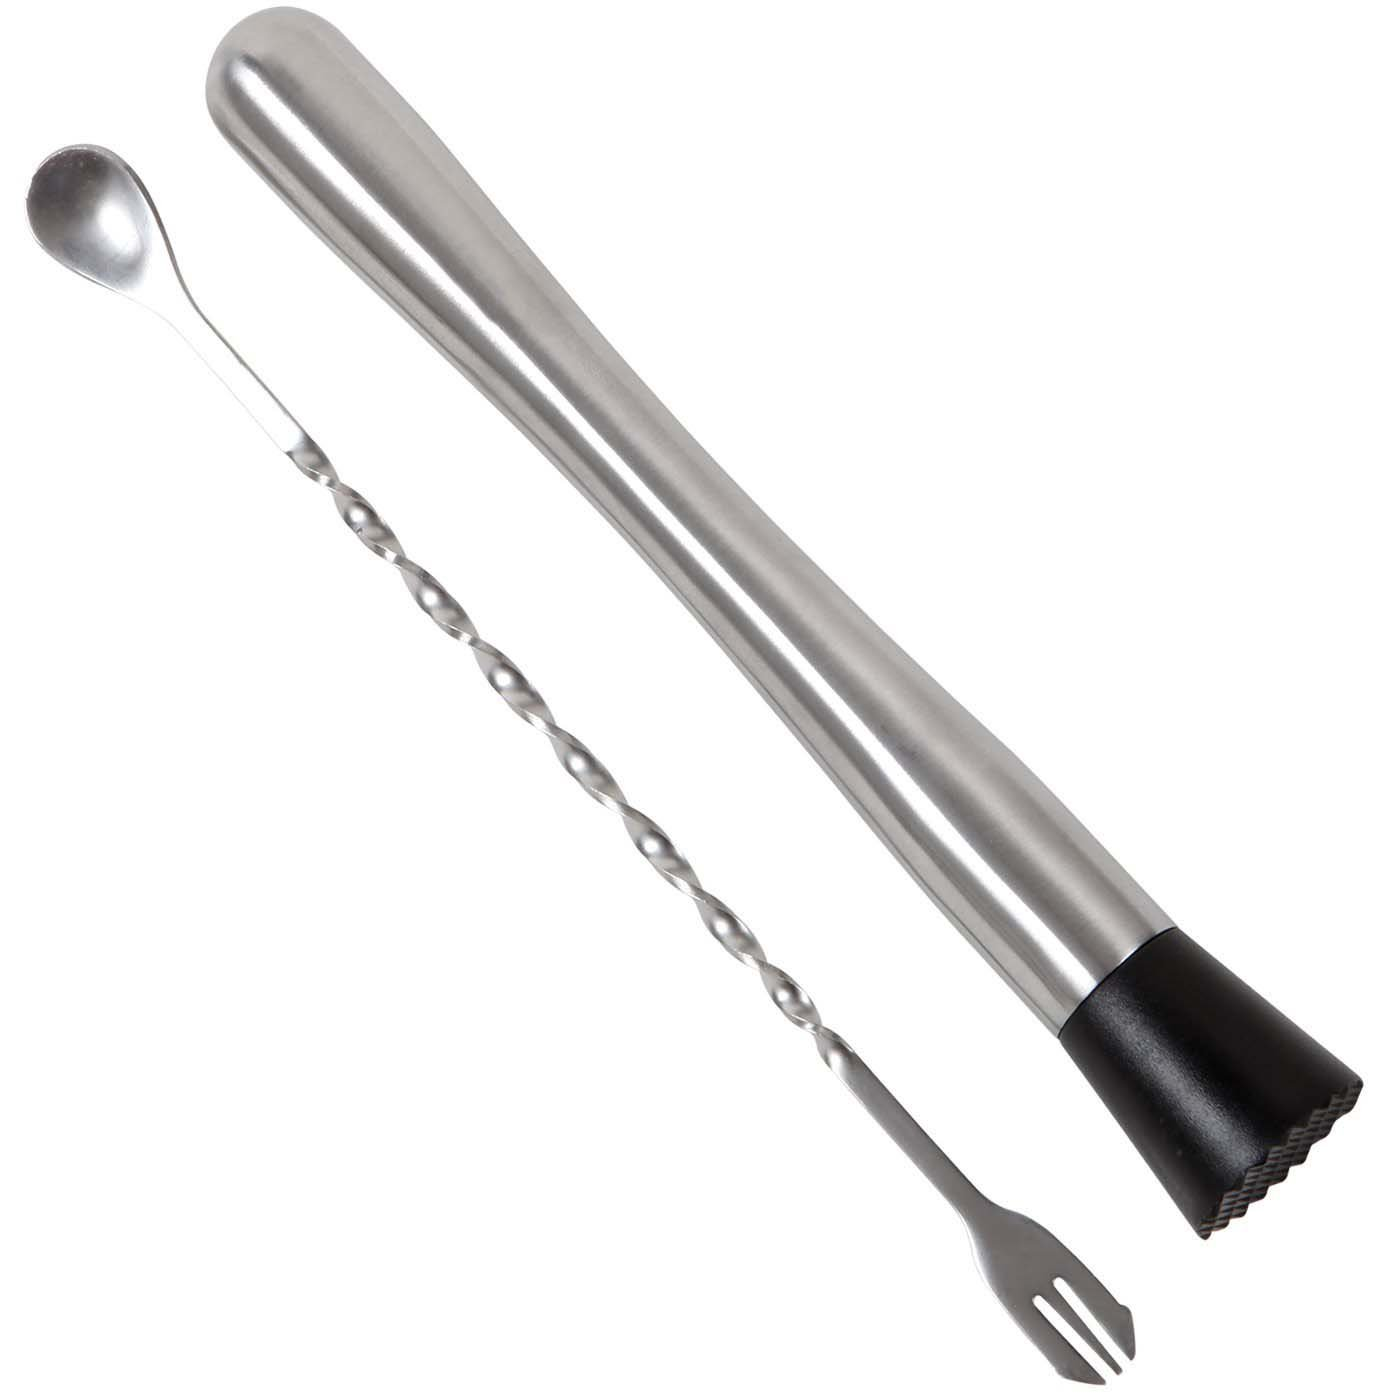 Nihao® Stainless Steel Cocktail Muddler & Mixing Spoon - Make Flavour Bursting Cocktails with Ease